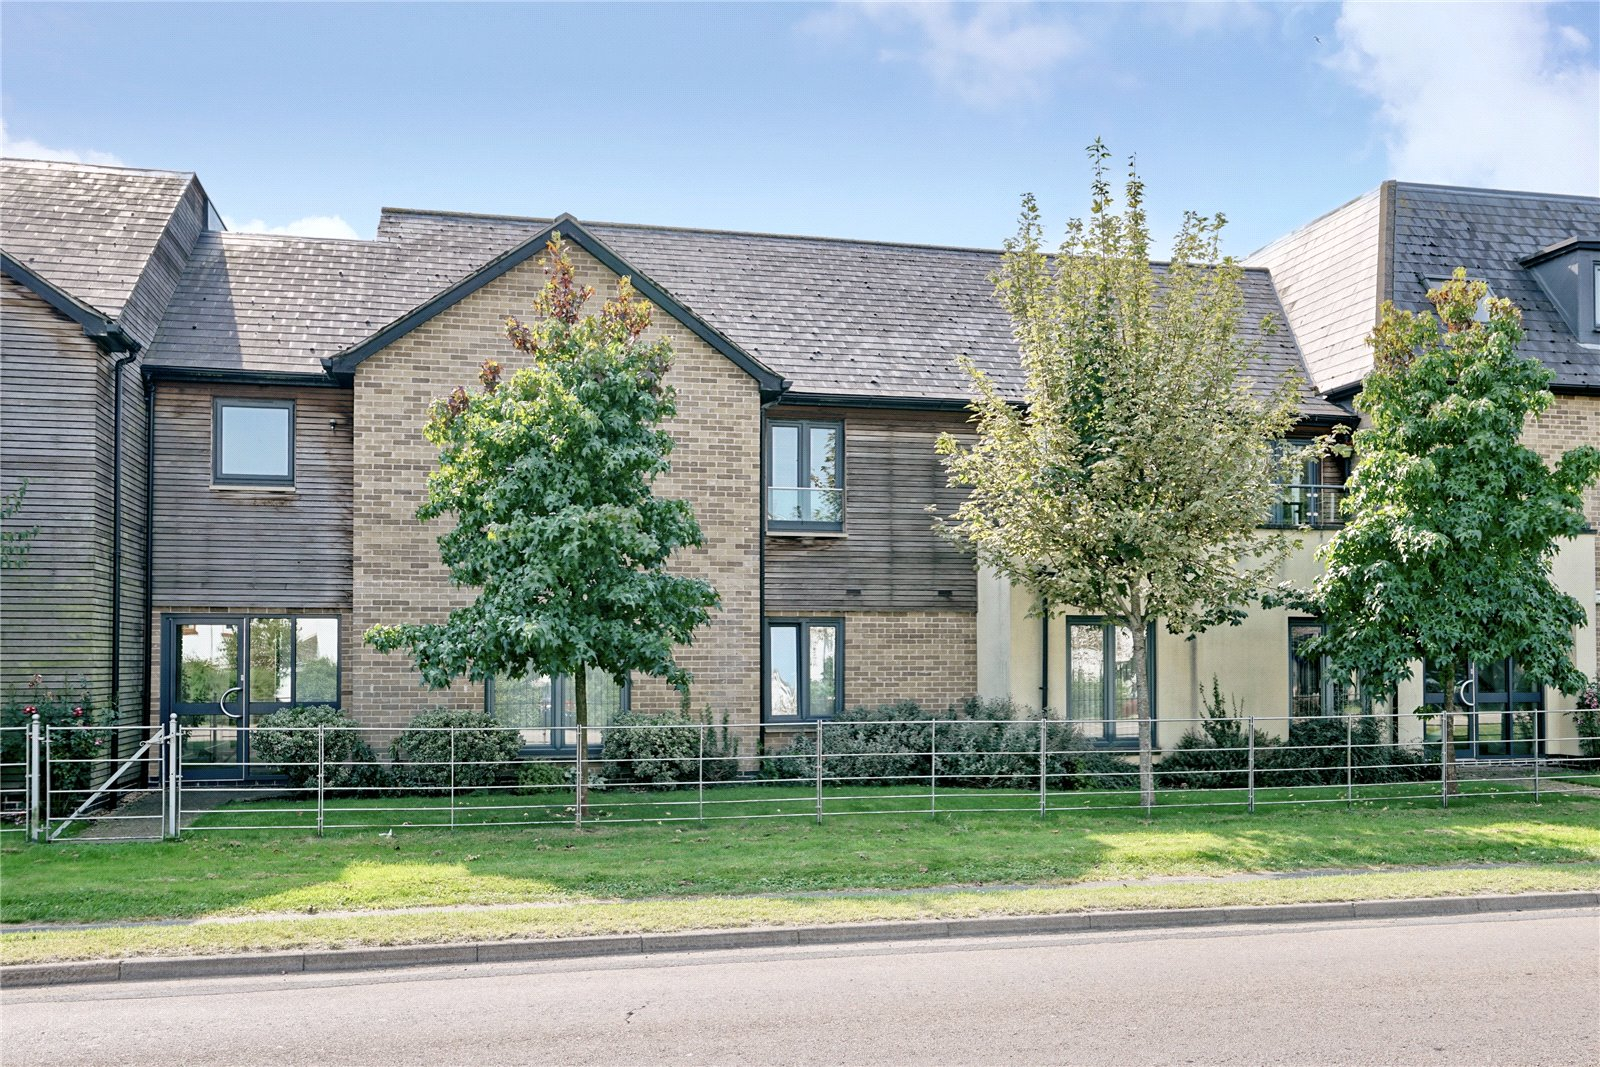 2 bed apartment for sale in Brampton, PE28 4QR  - Property Image 1